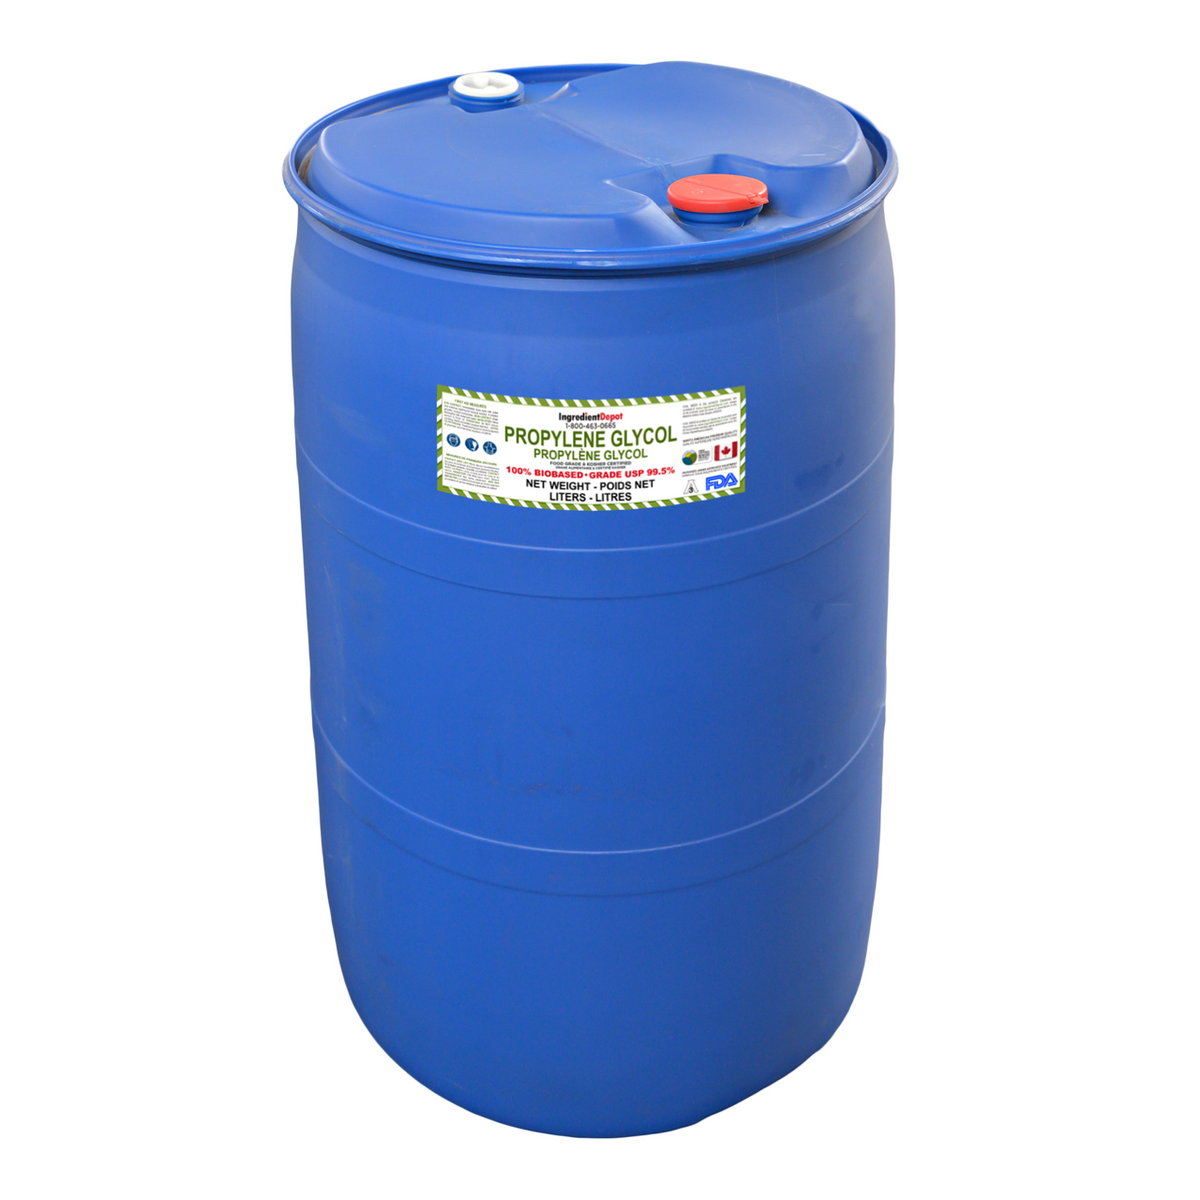 Propylene Glycol North American PG 99.5% USP 100% BIOBASED | 200 litres in a Drum